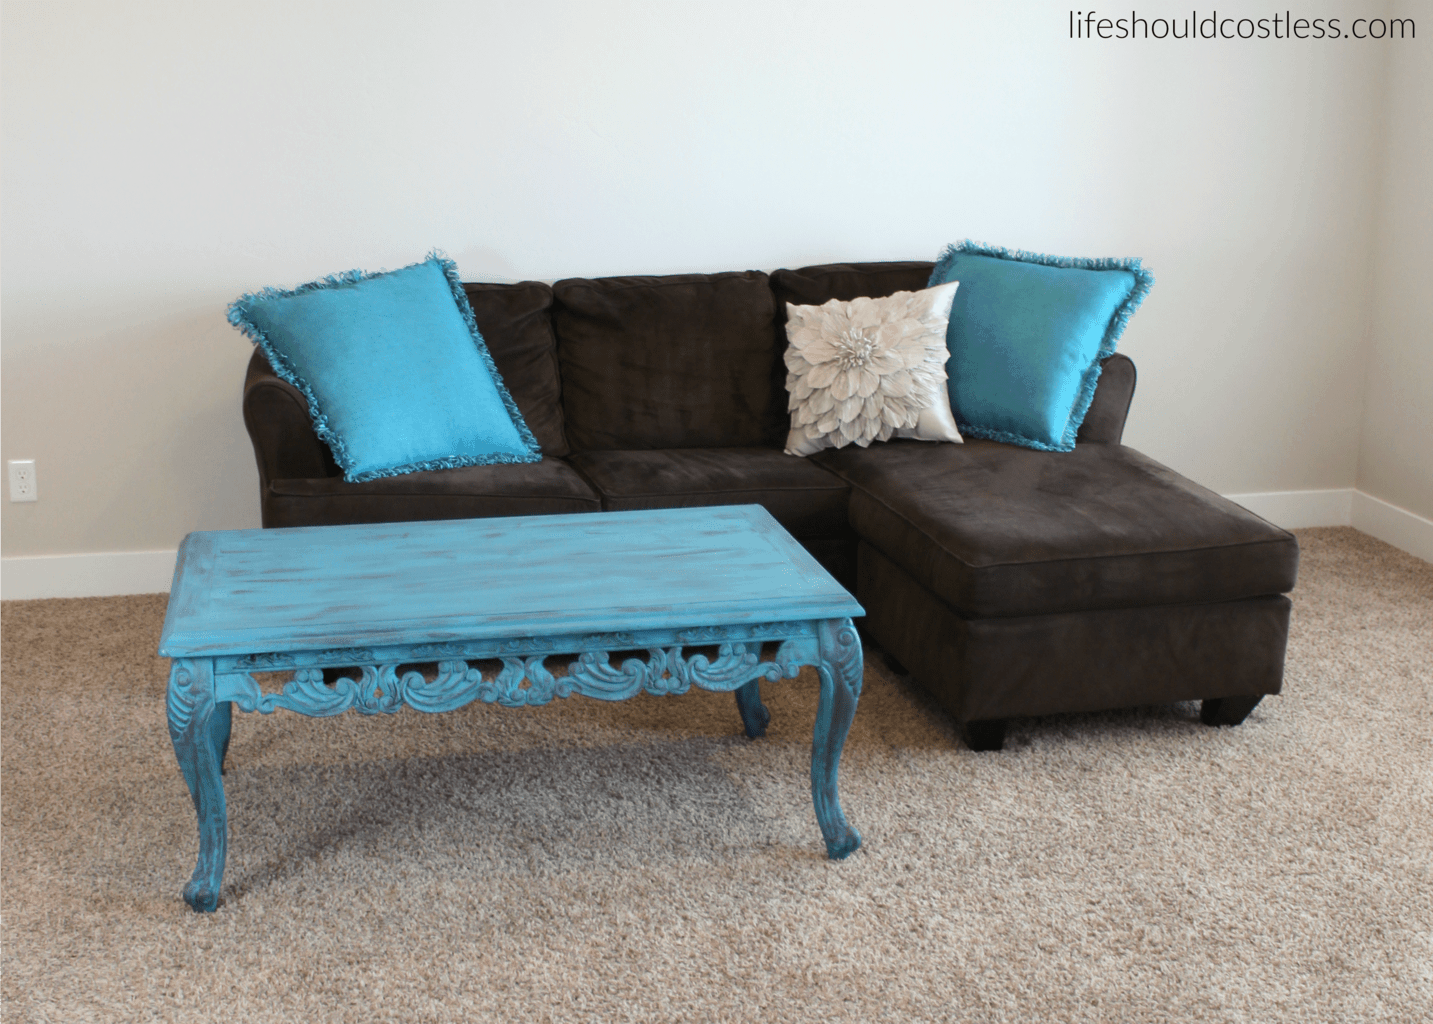 Turquoise Coffee Table Make-Over In Americana Decor Treasure After